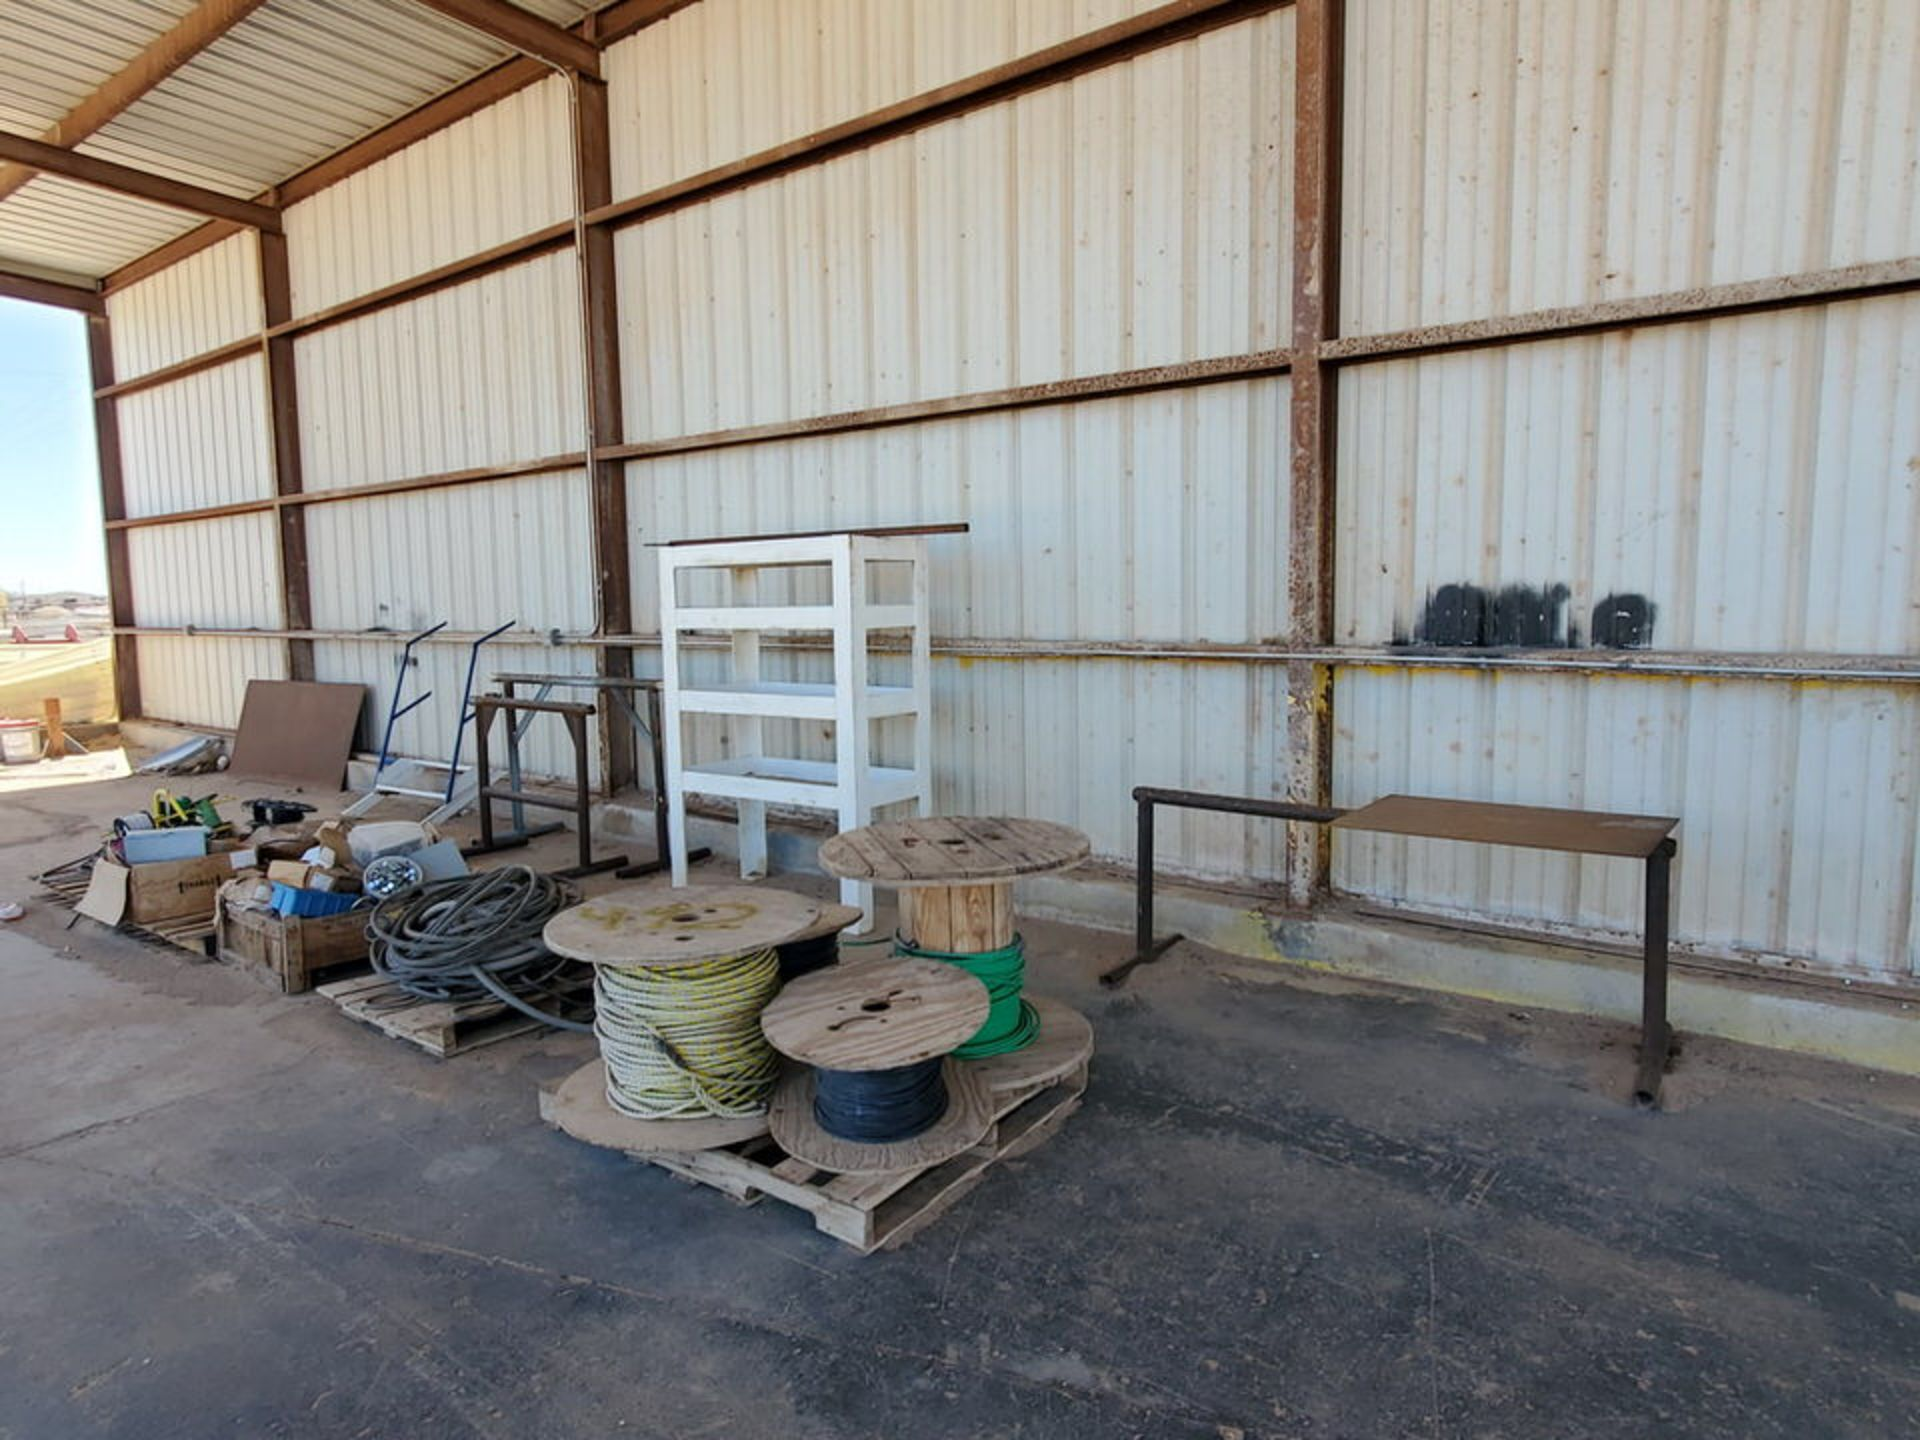 Misc. Matl. To Include But Not Limited To: Lift Basket, Welding Table, Sheet Metal, Ele Wire, Rope - Image 4 of 13